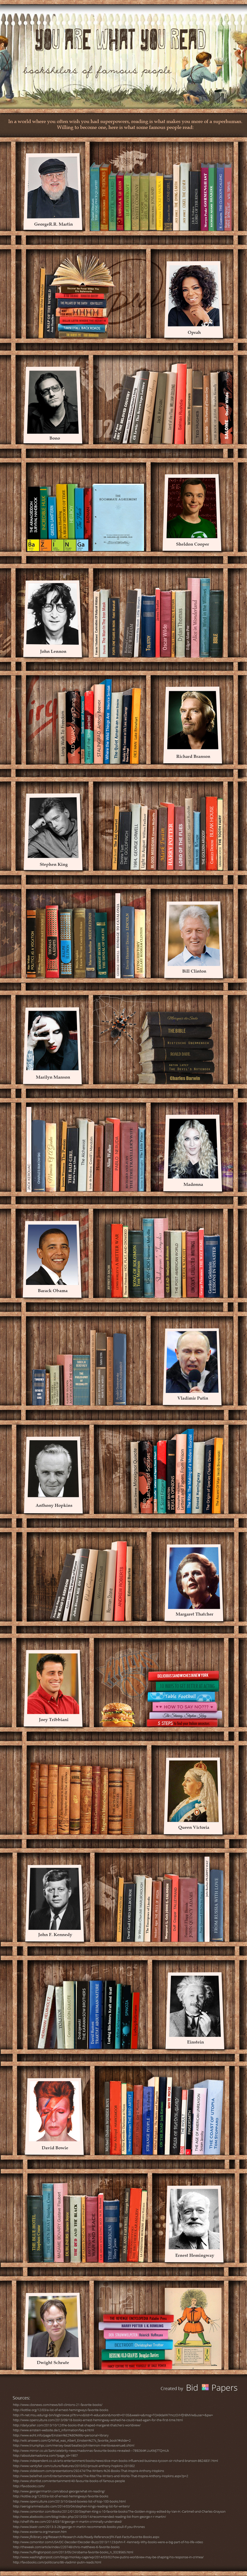 Books to Aspire to, Books that Inspire: Bookshelves of Famous People - Infographic